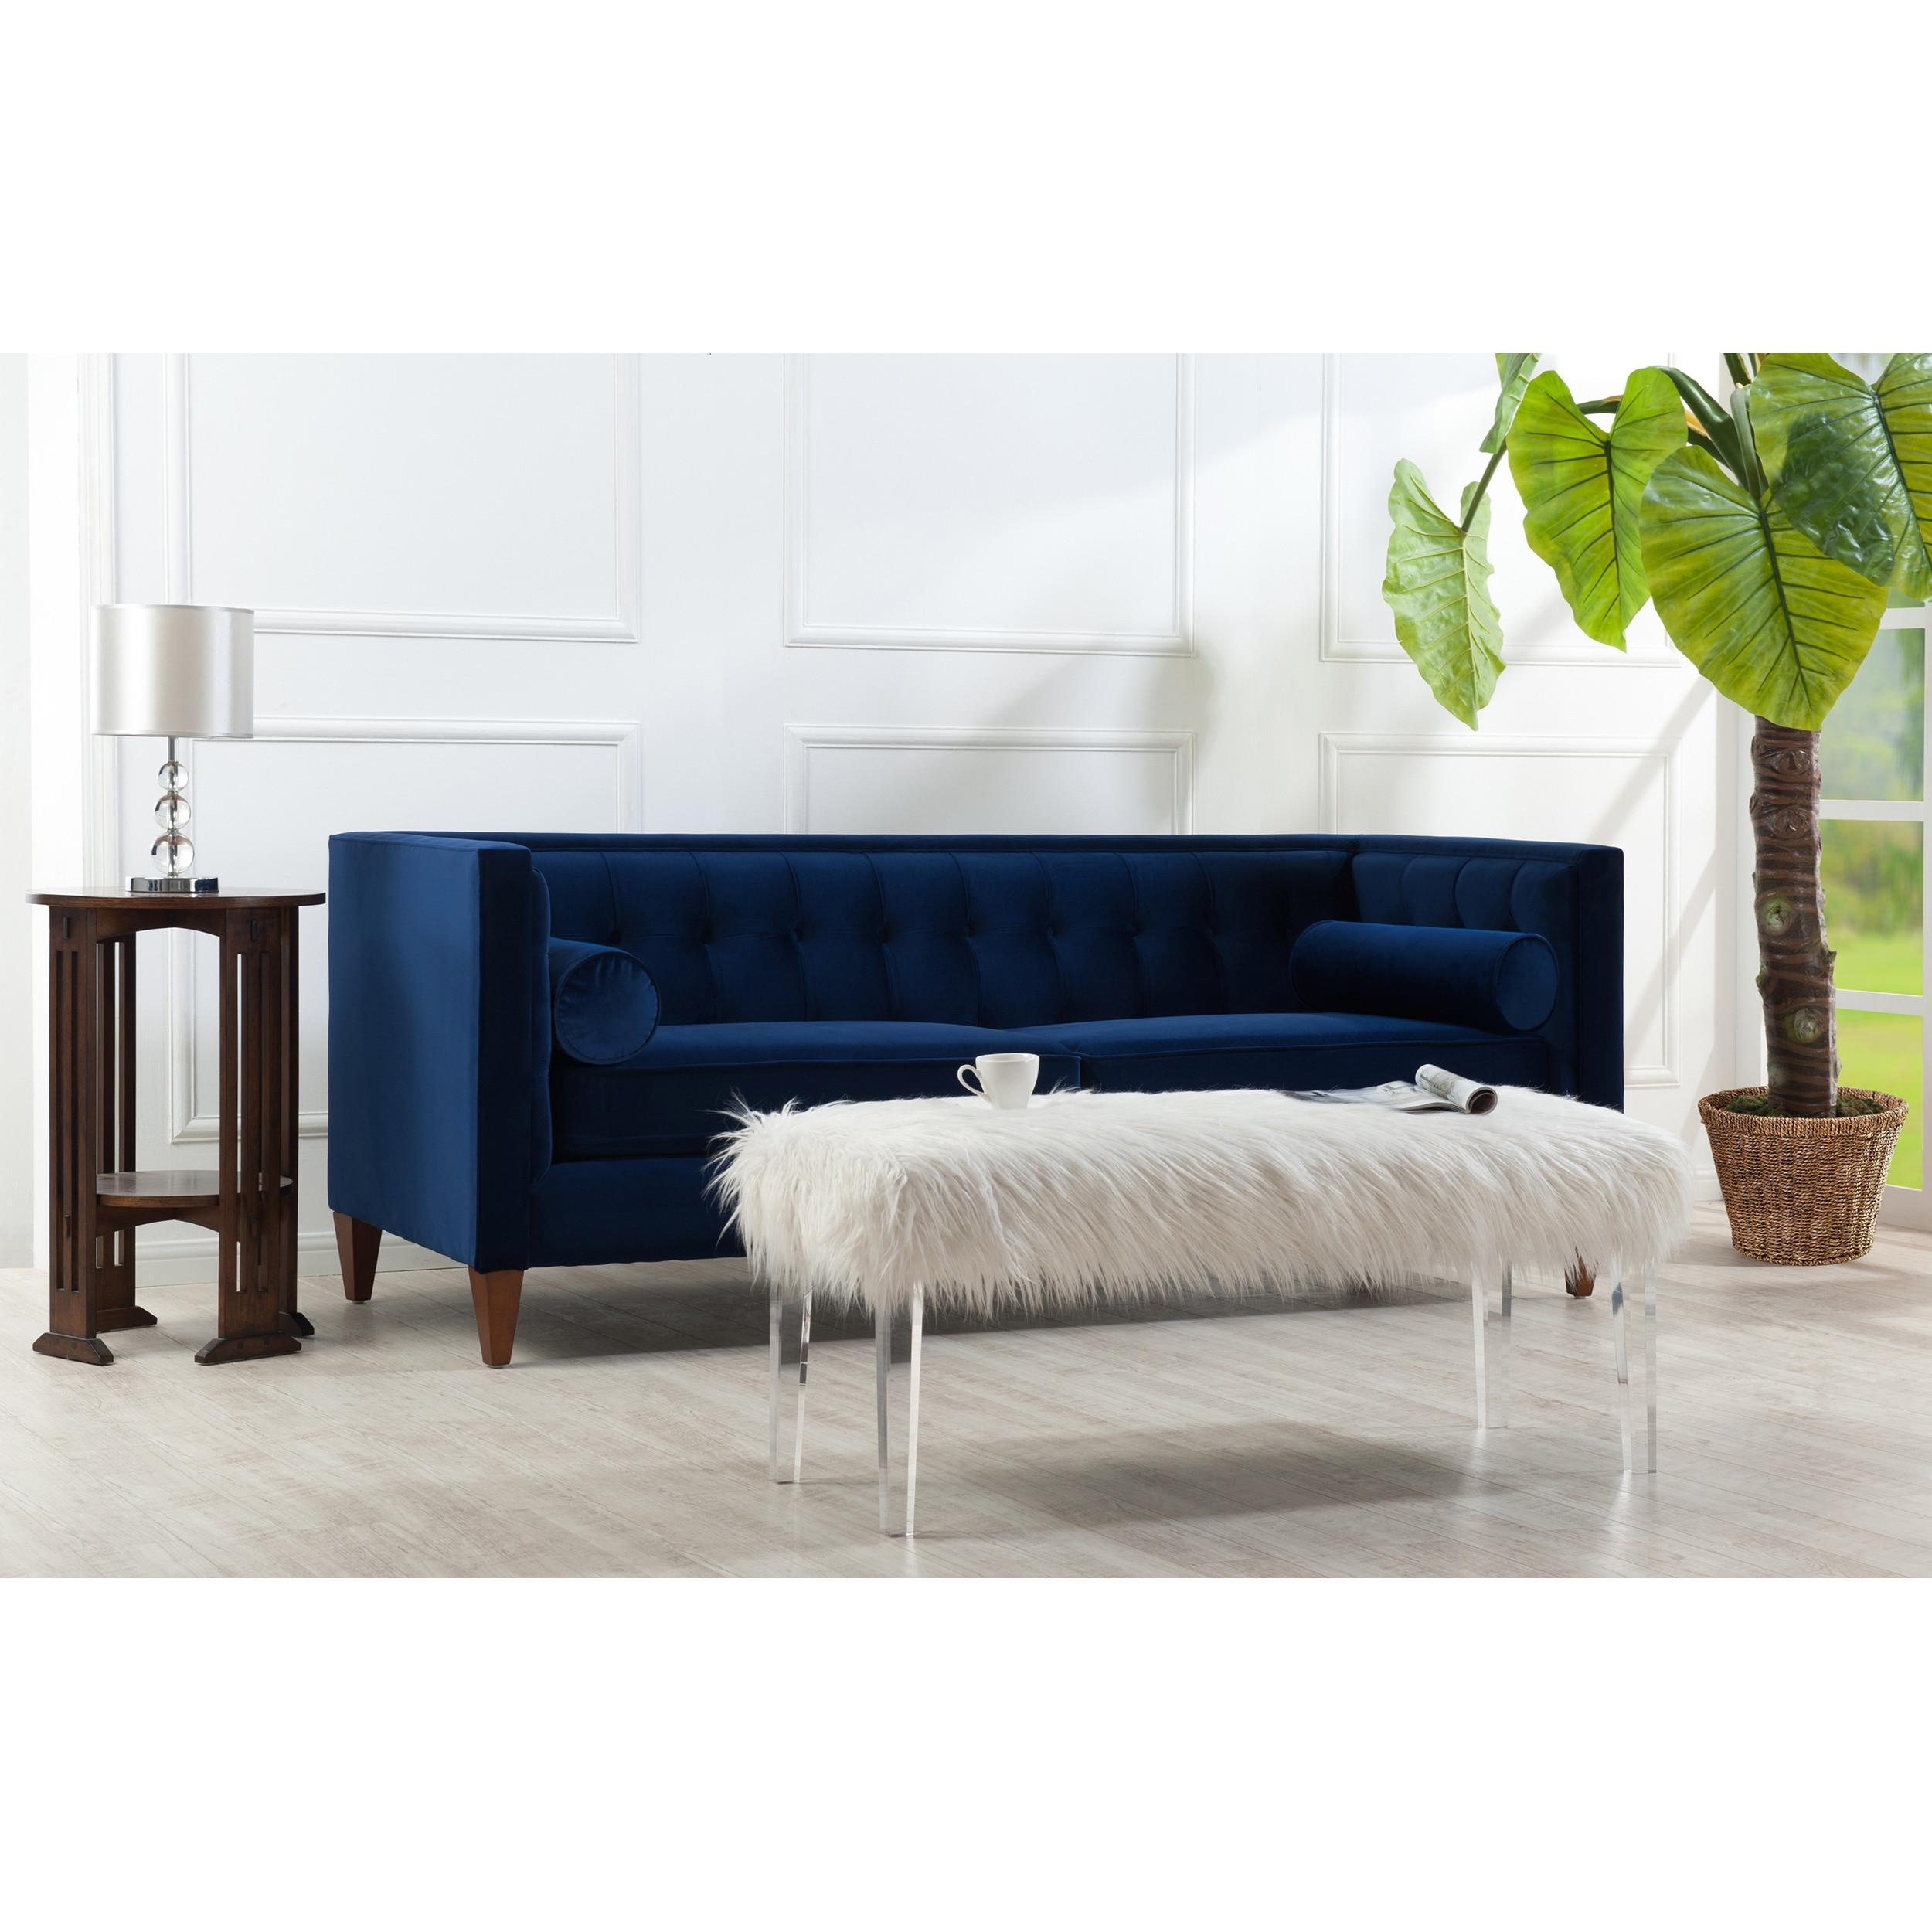 Trend Navy Tufted Sofa 94 On Sofas And Couches Set With Navy Pertaining To Sofa Trend (View 20 of 20)